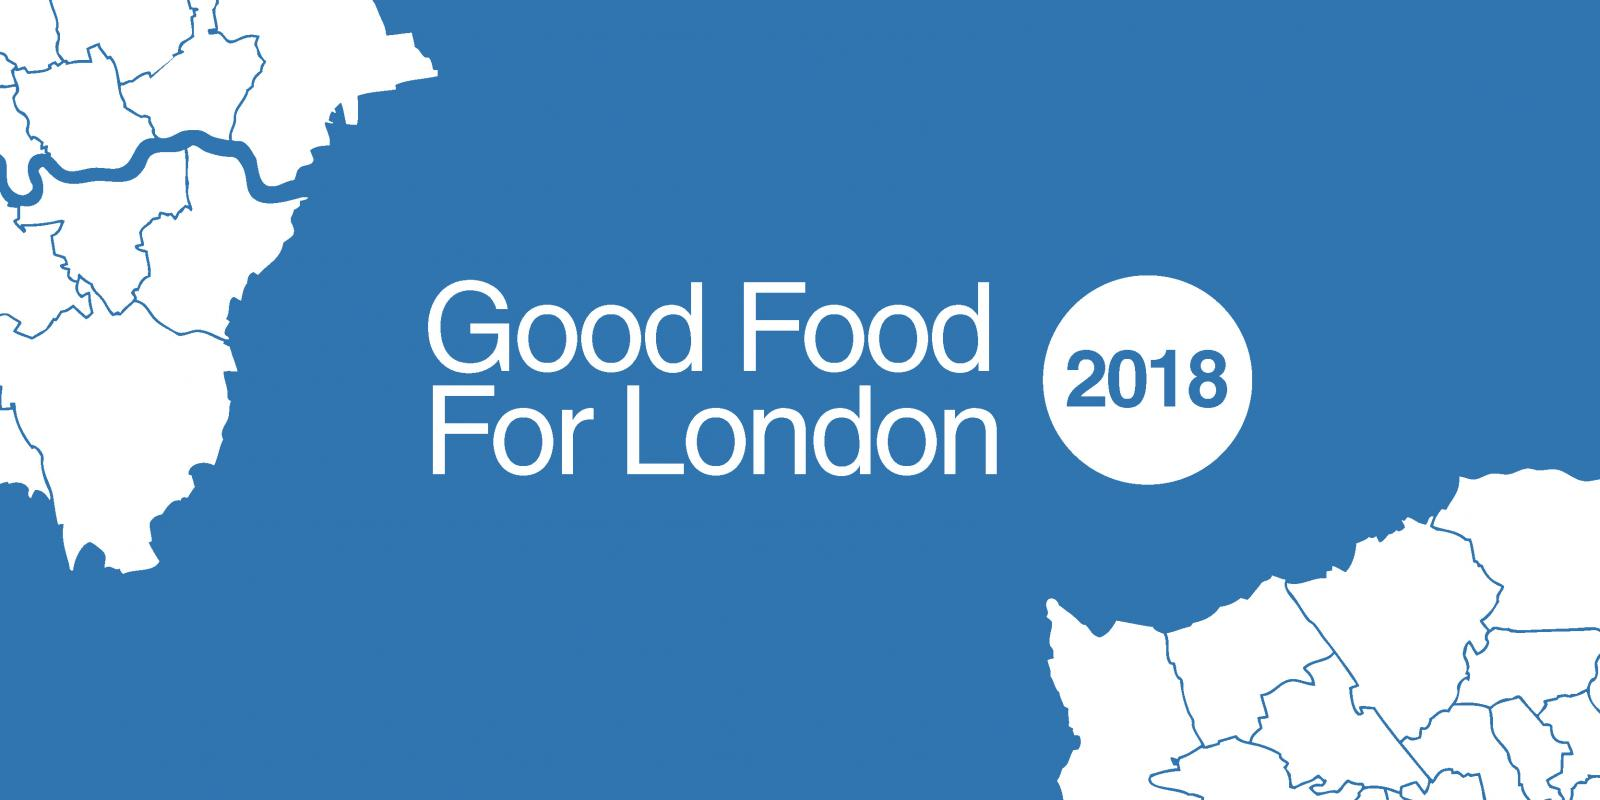 sustainweb.org - Good Food For London: How London boroughs can help secure a healthy and sustainable food future